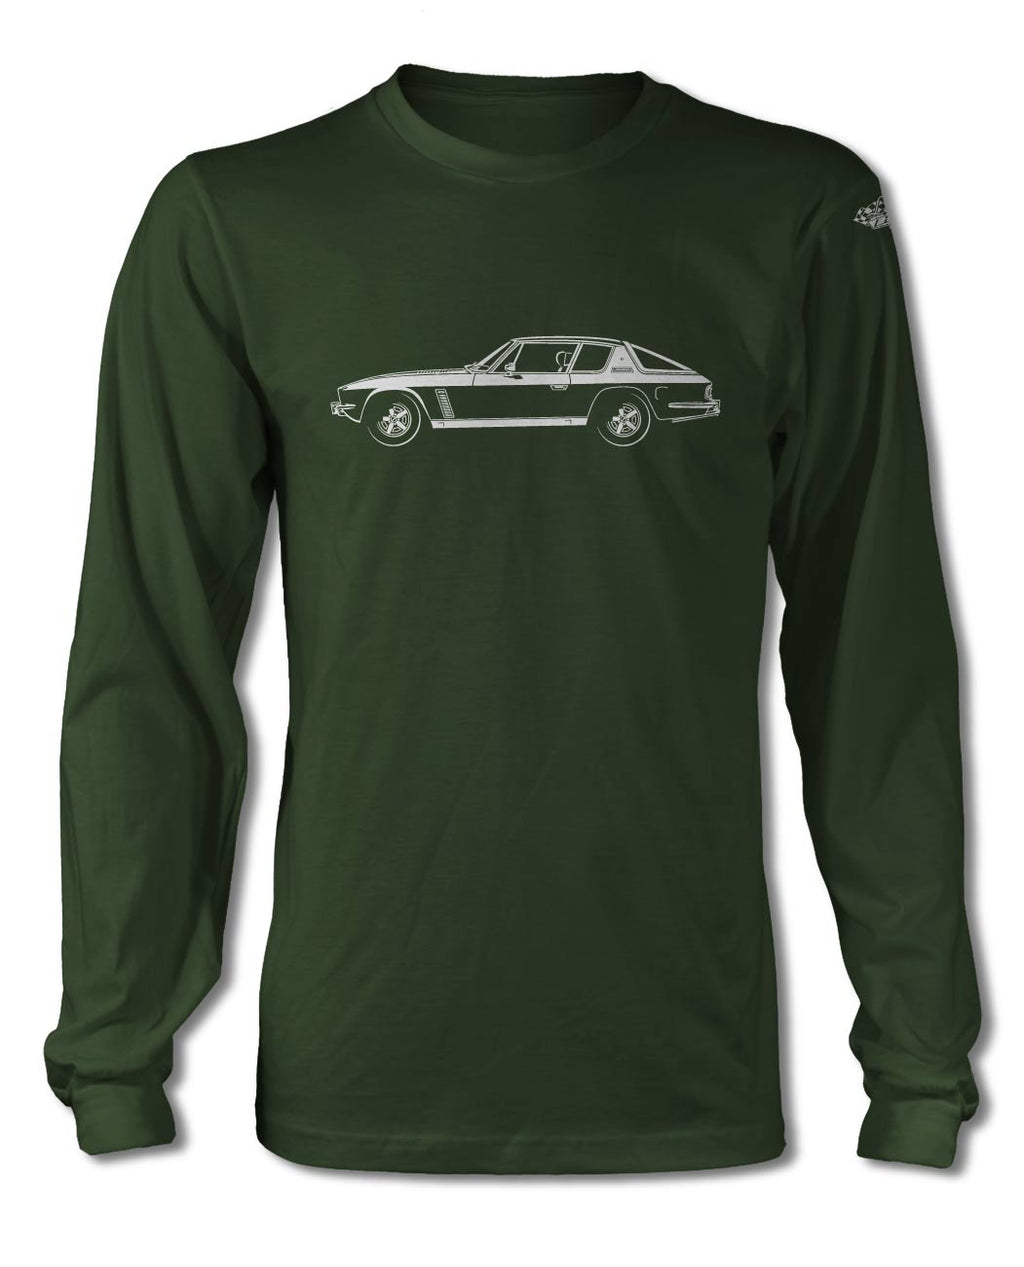 Jensen Interceptor Coupe T-Shirt - Long Sleeves - Side View